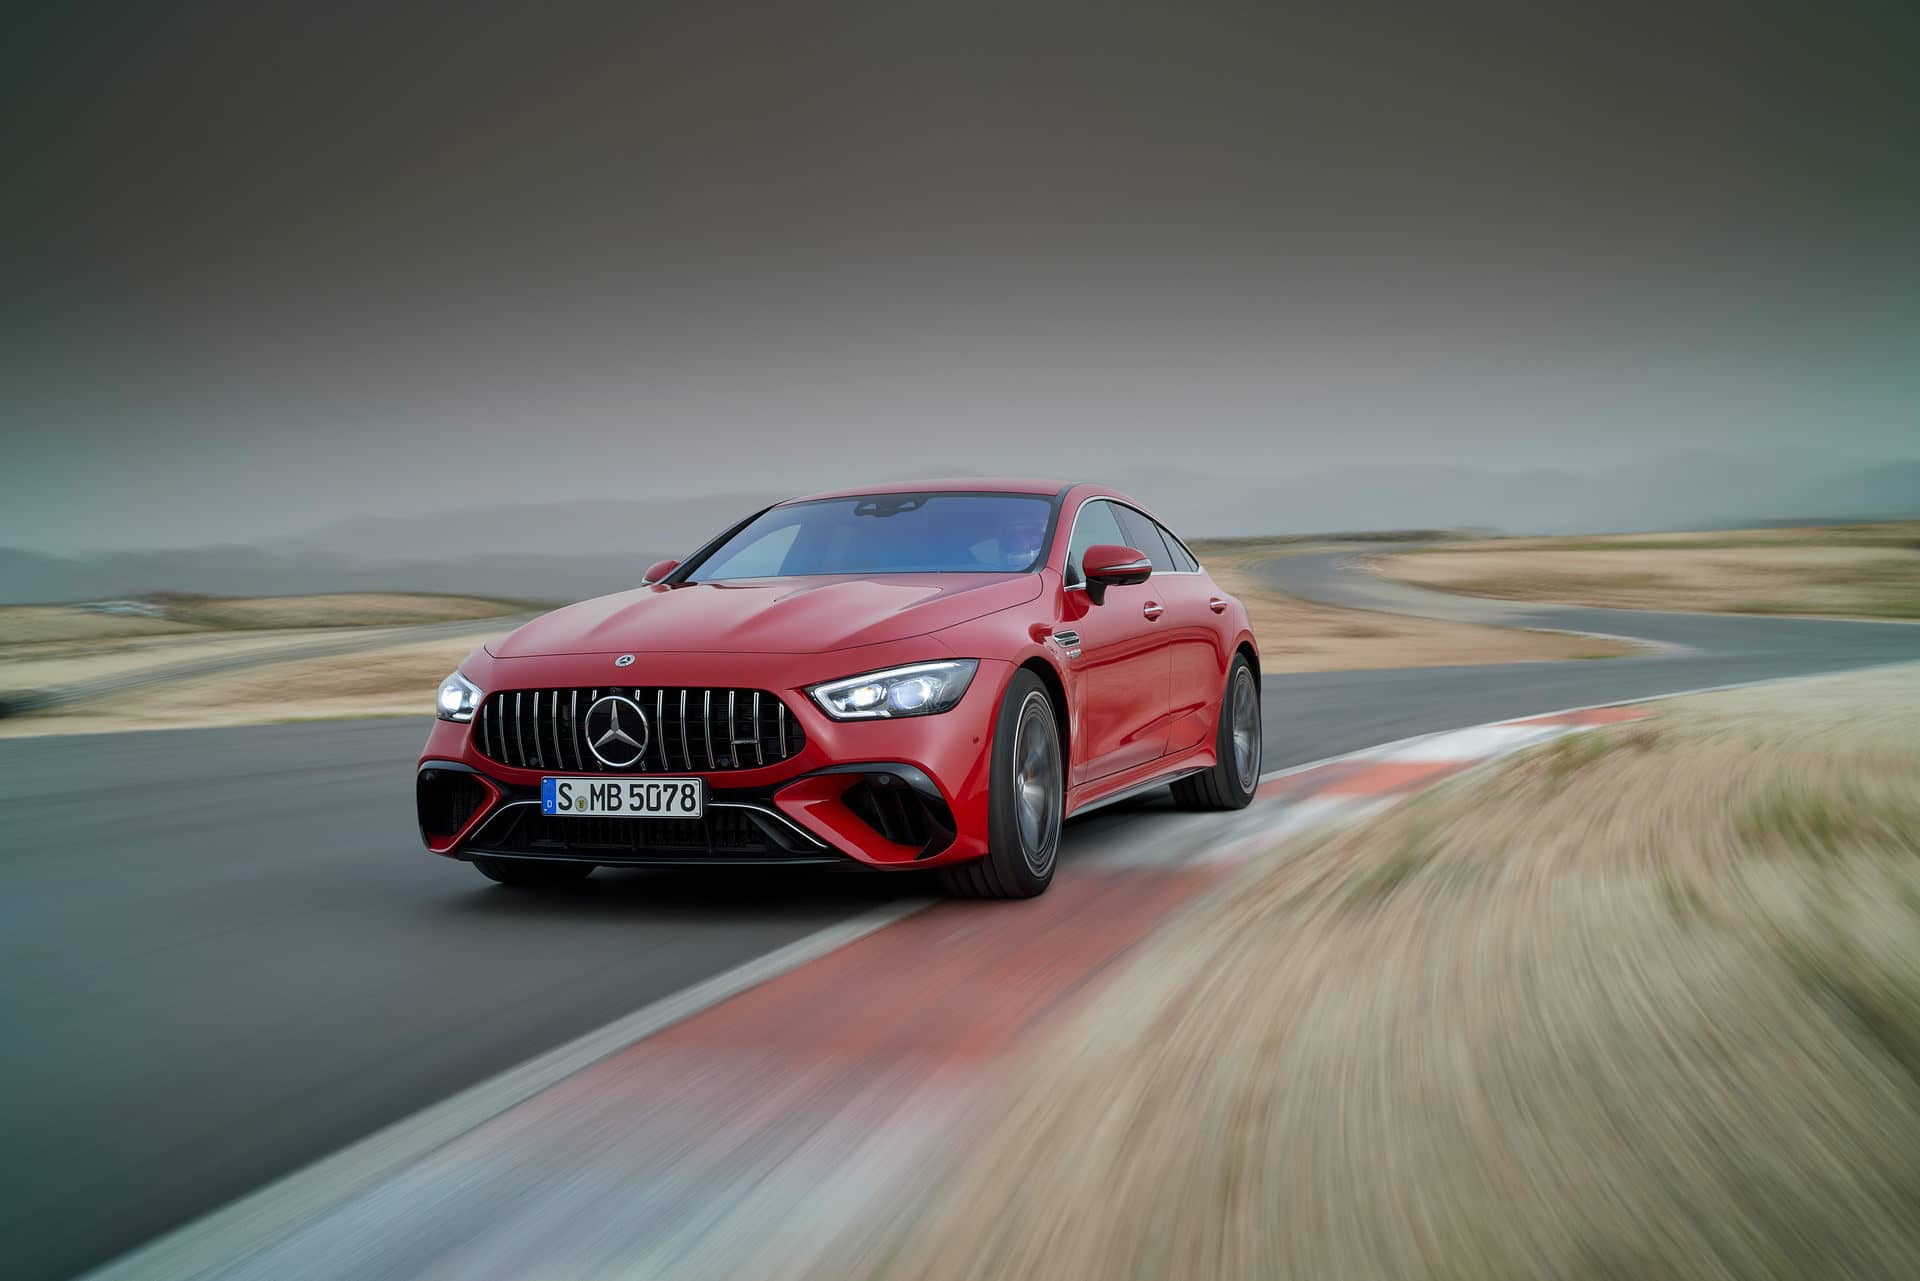 mercedes-amg gt 63 s eperformance (4)